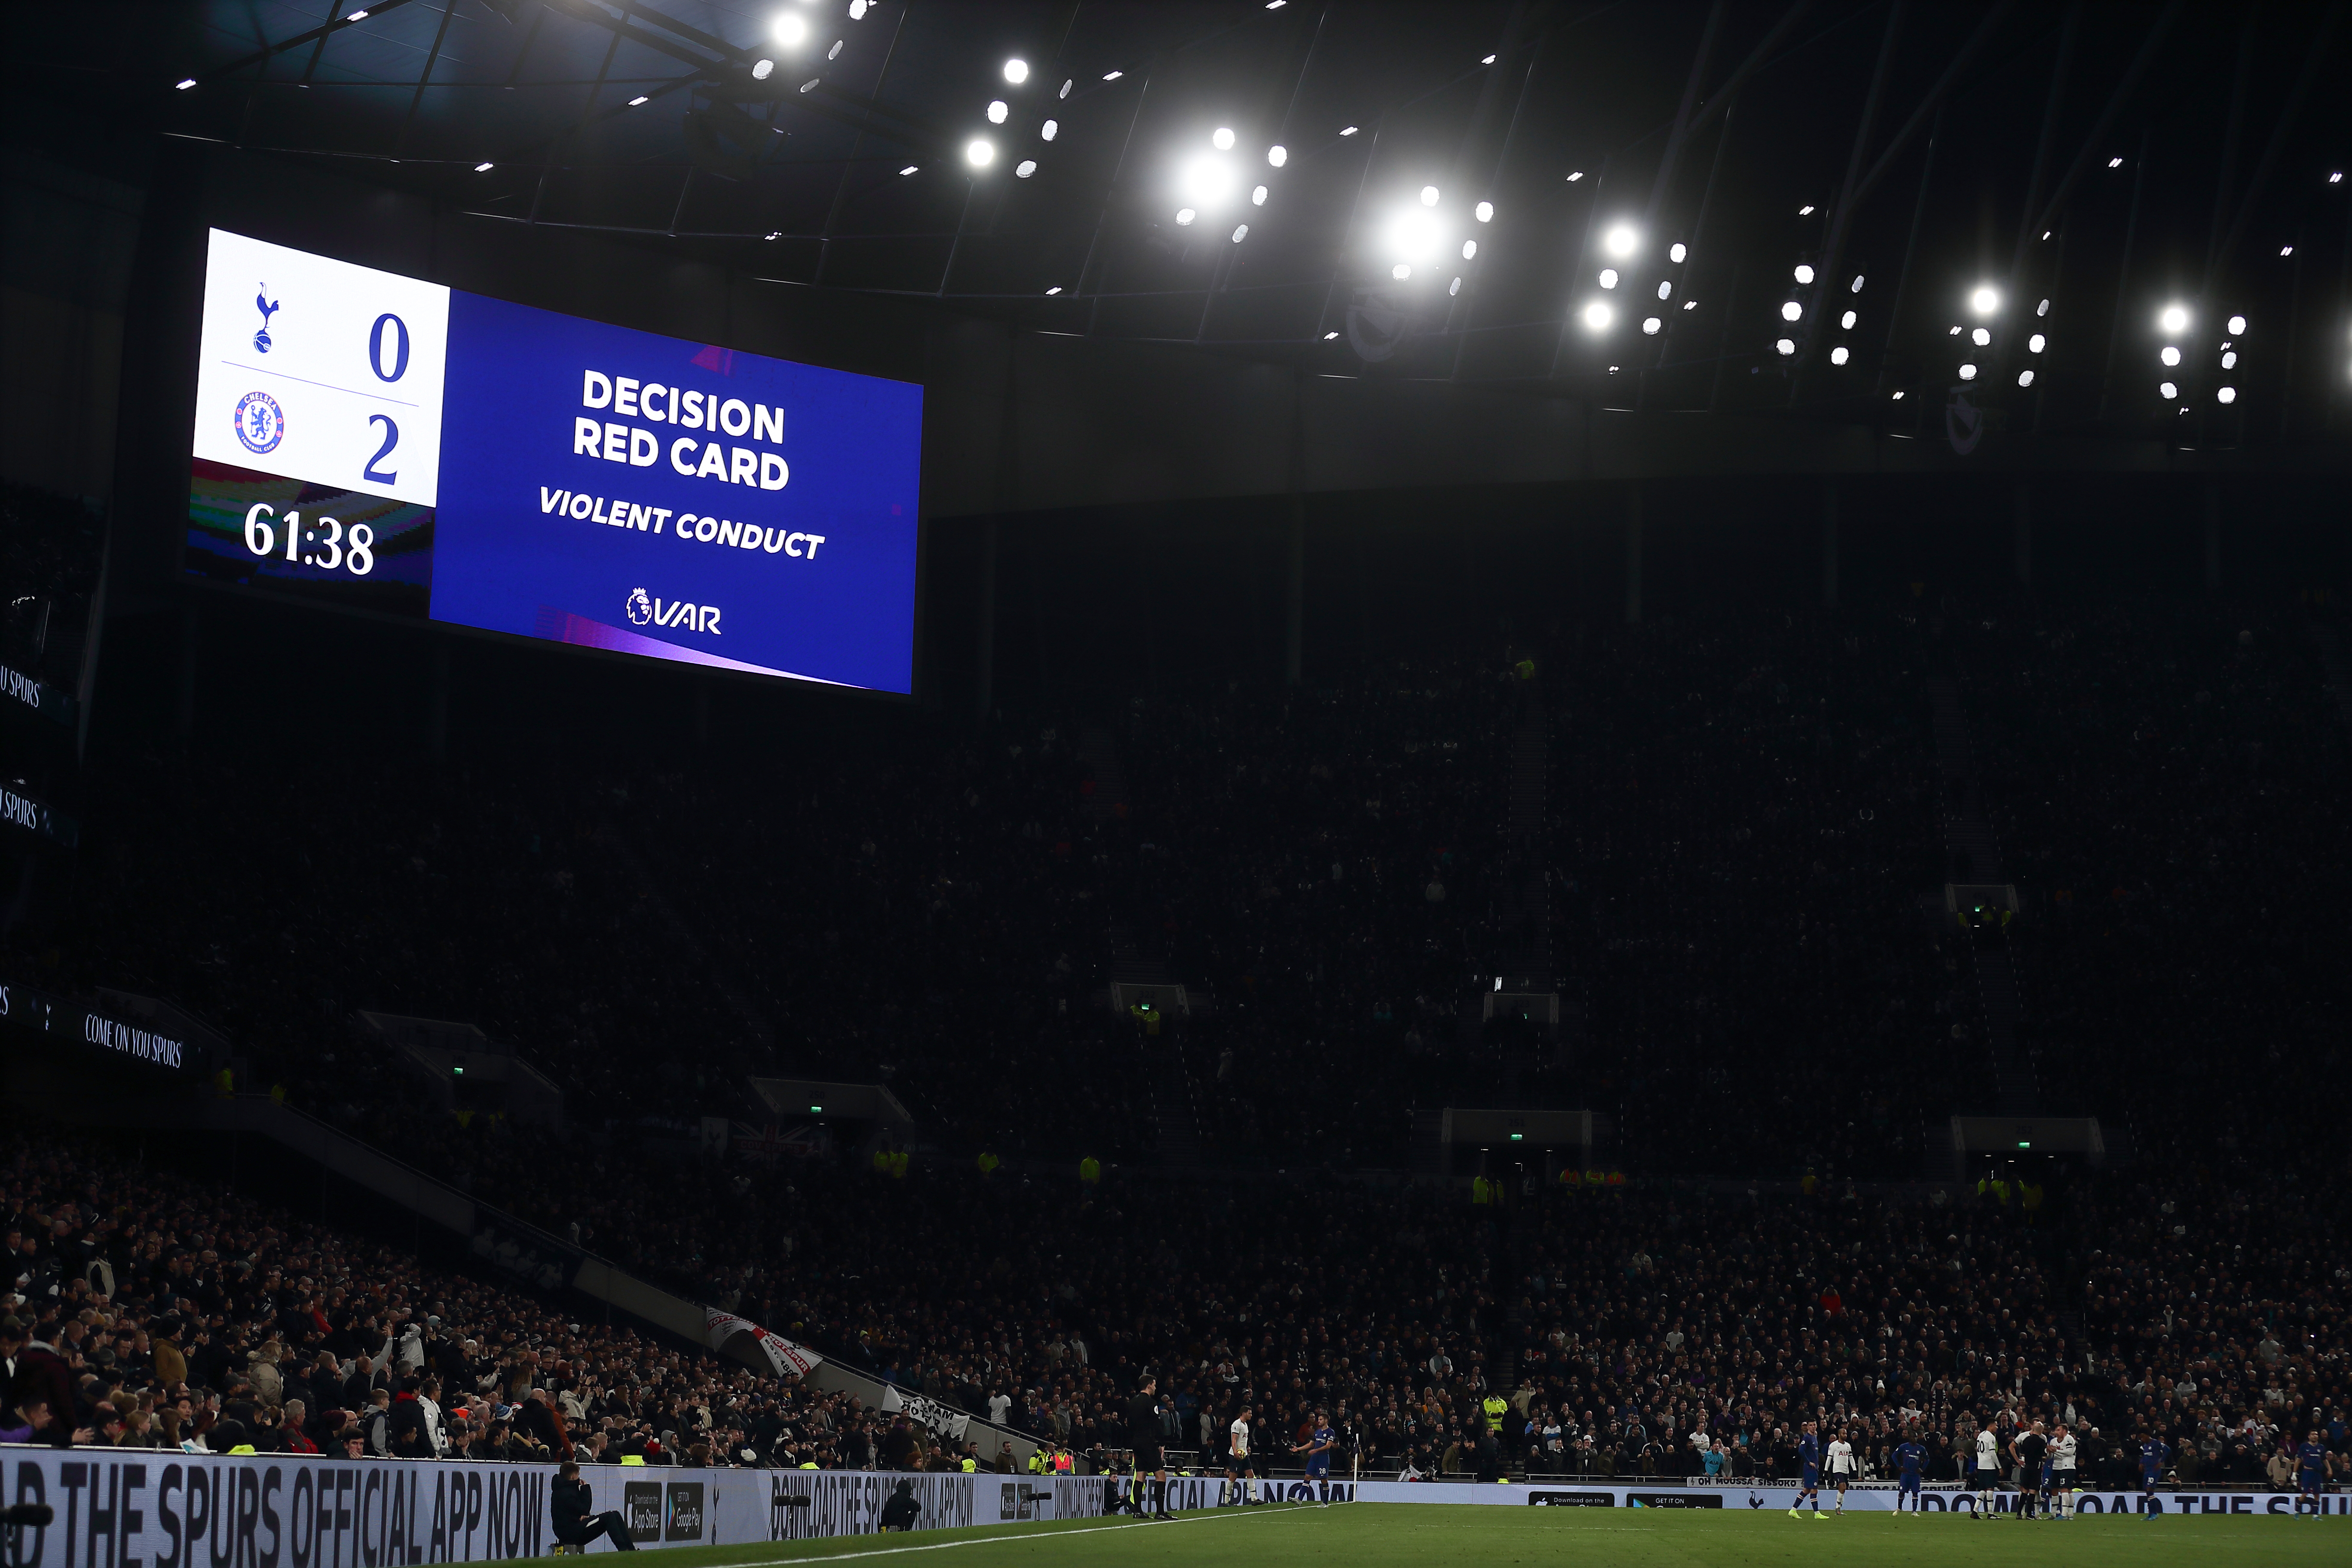 Son Heung-Min is sent off after a VAR check for kicking Antonio Rudiger.